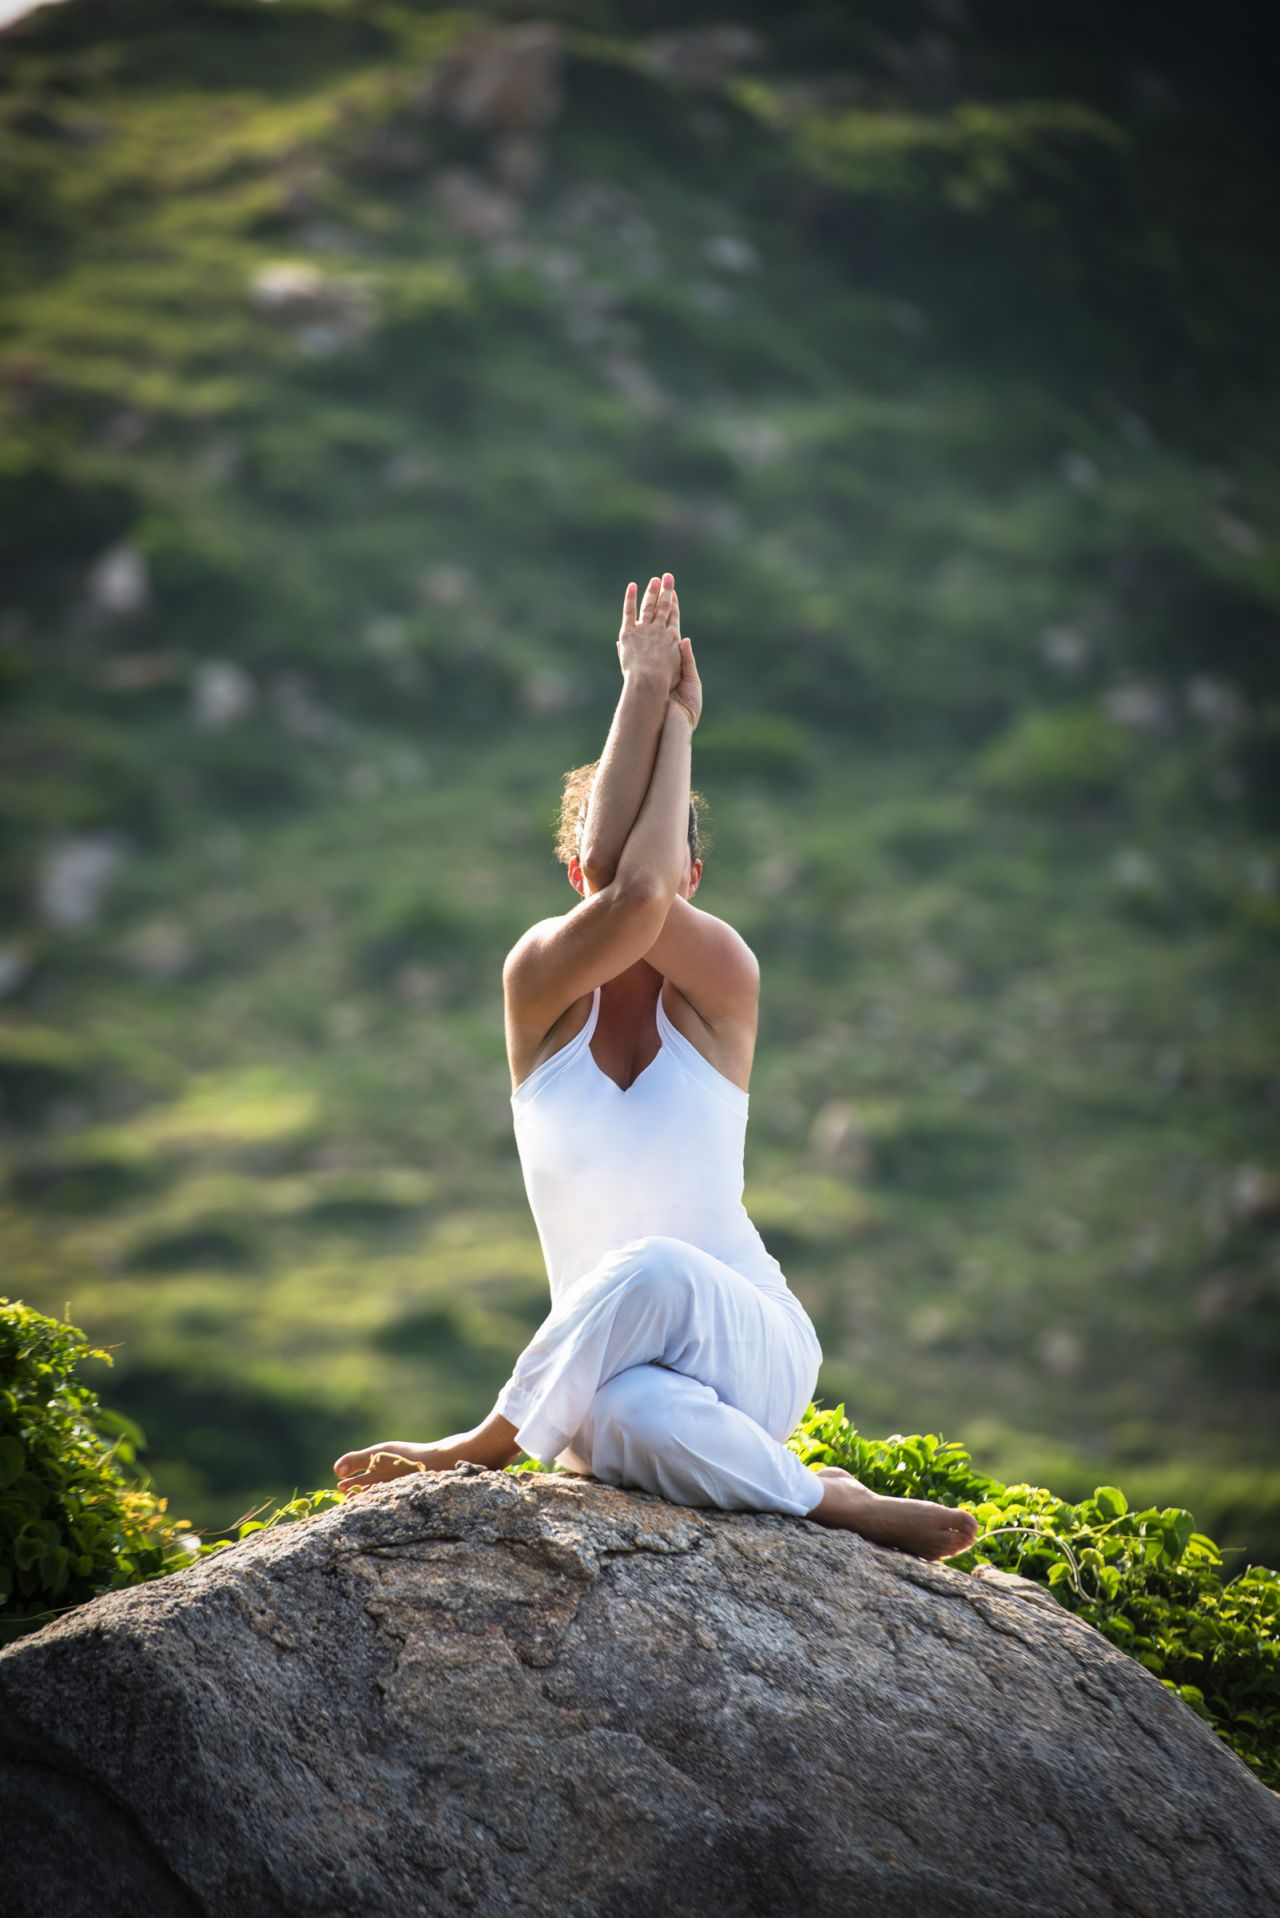 Yoga-on-the-rock_Original_15118